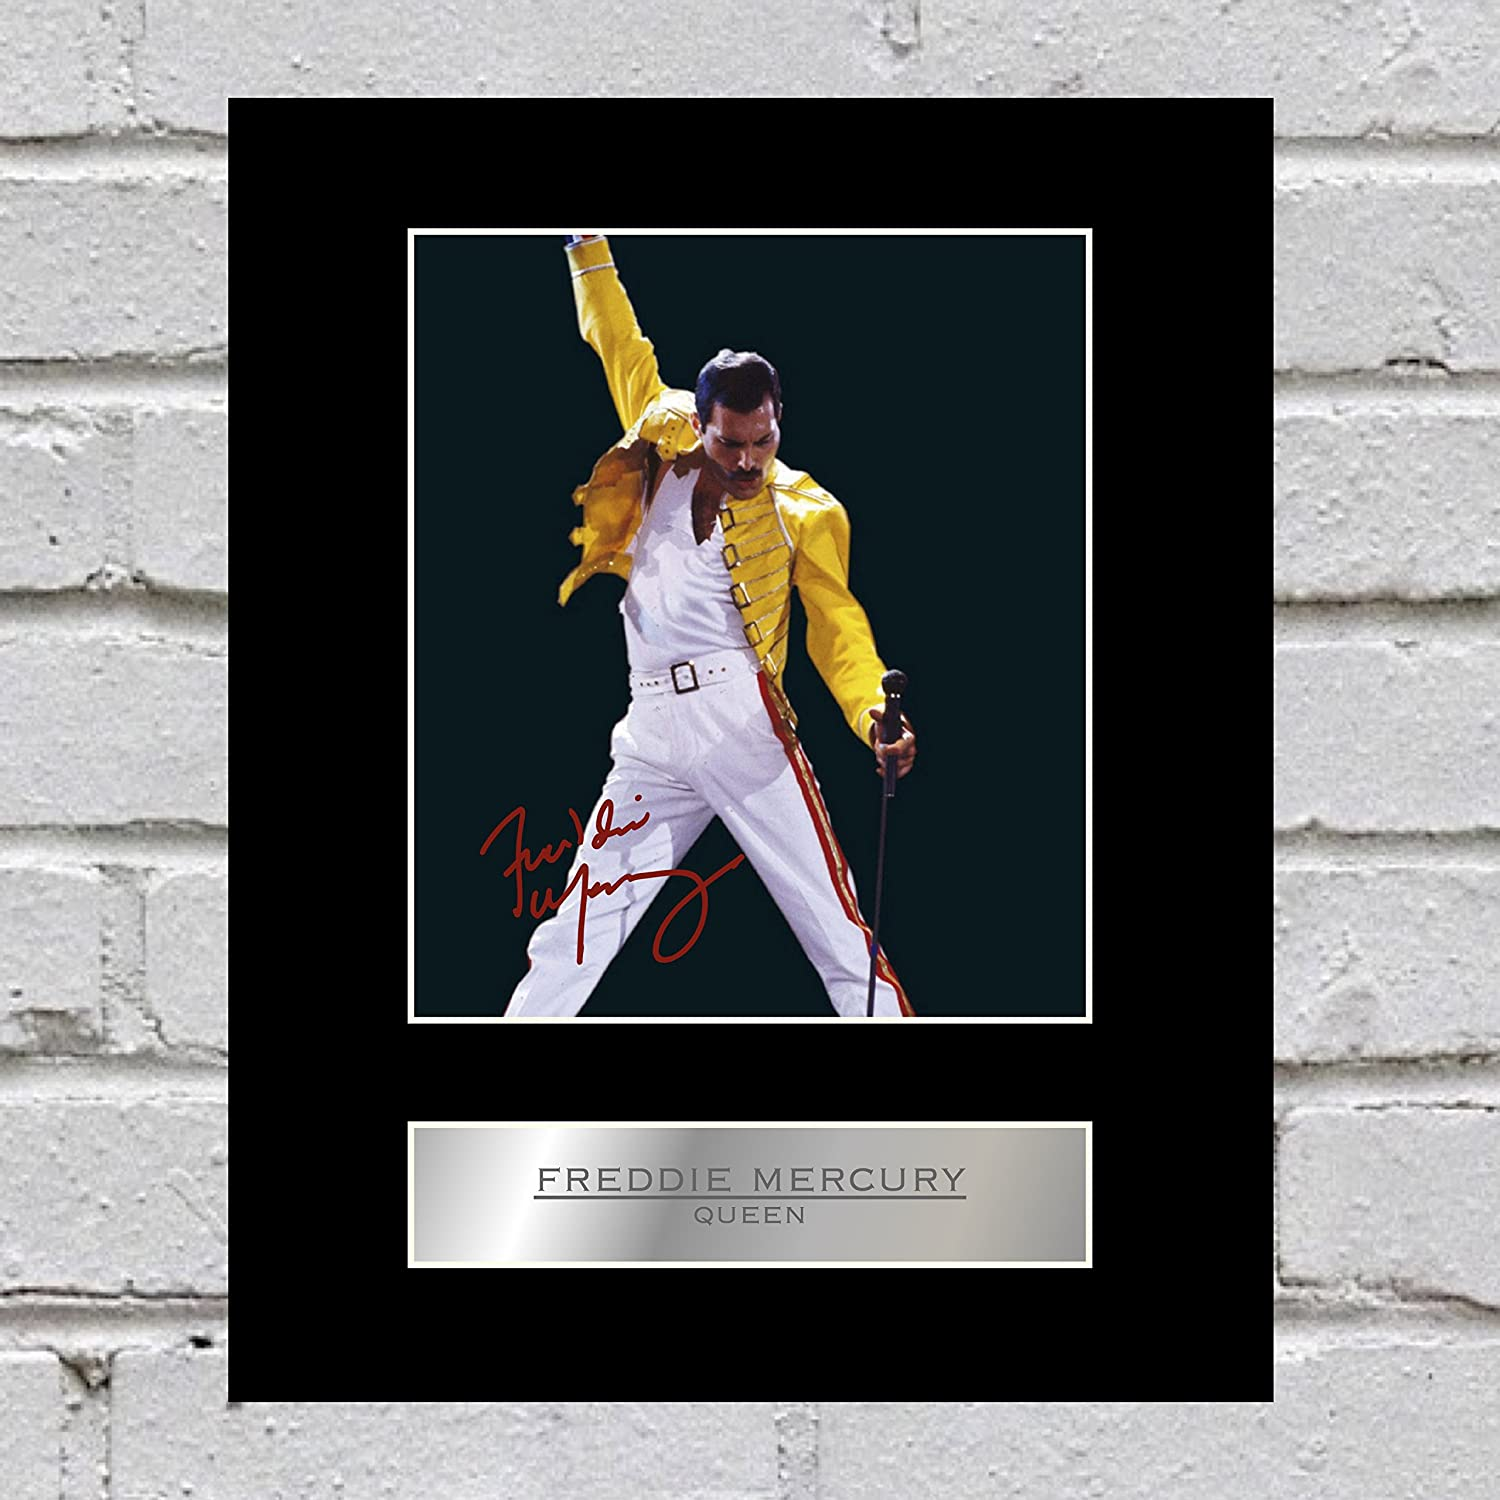 Freddie Mercury Photo Display Queen #2 Iconic pics